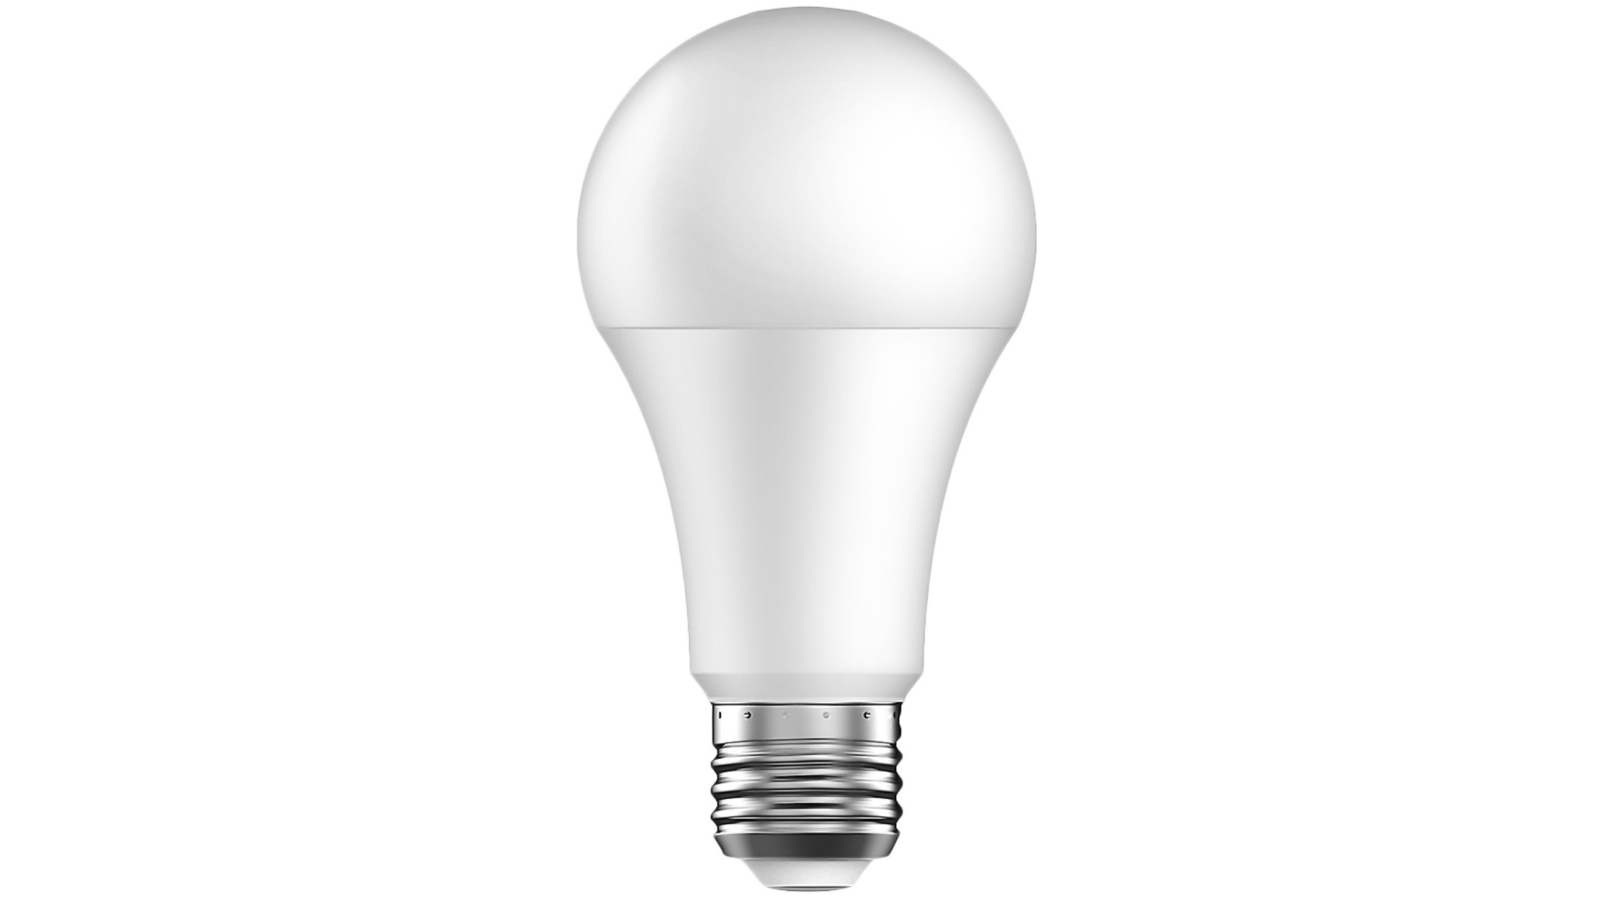 Buy Connect Smart 10w E27 White Led Light Bulb Harvey Norman Au